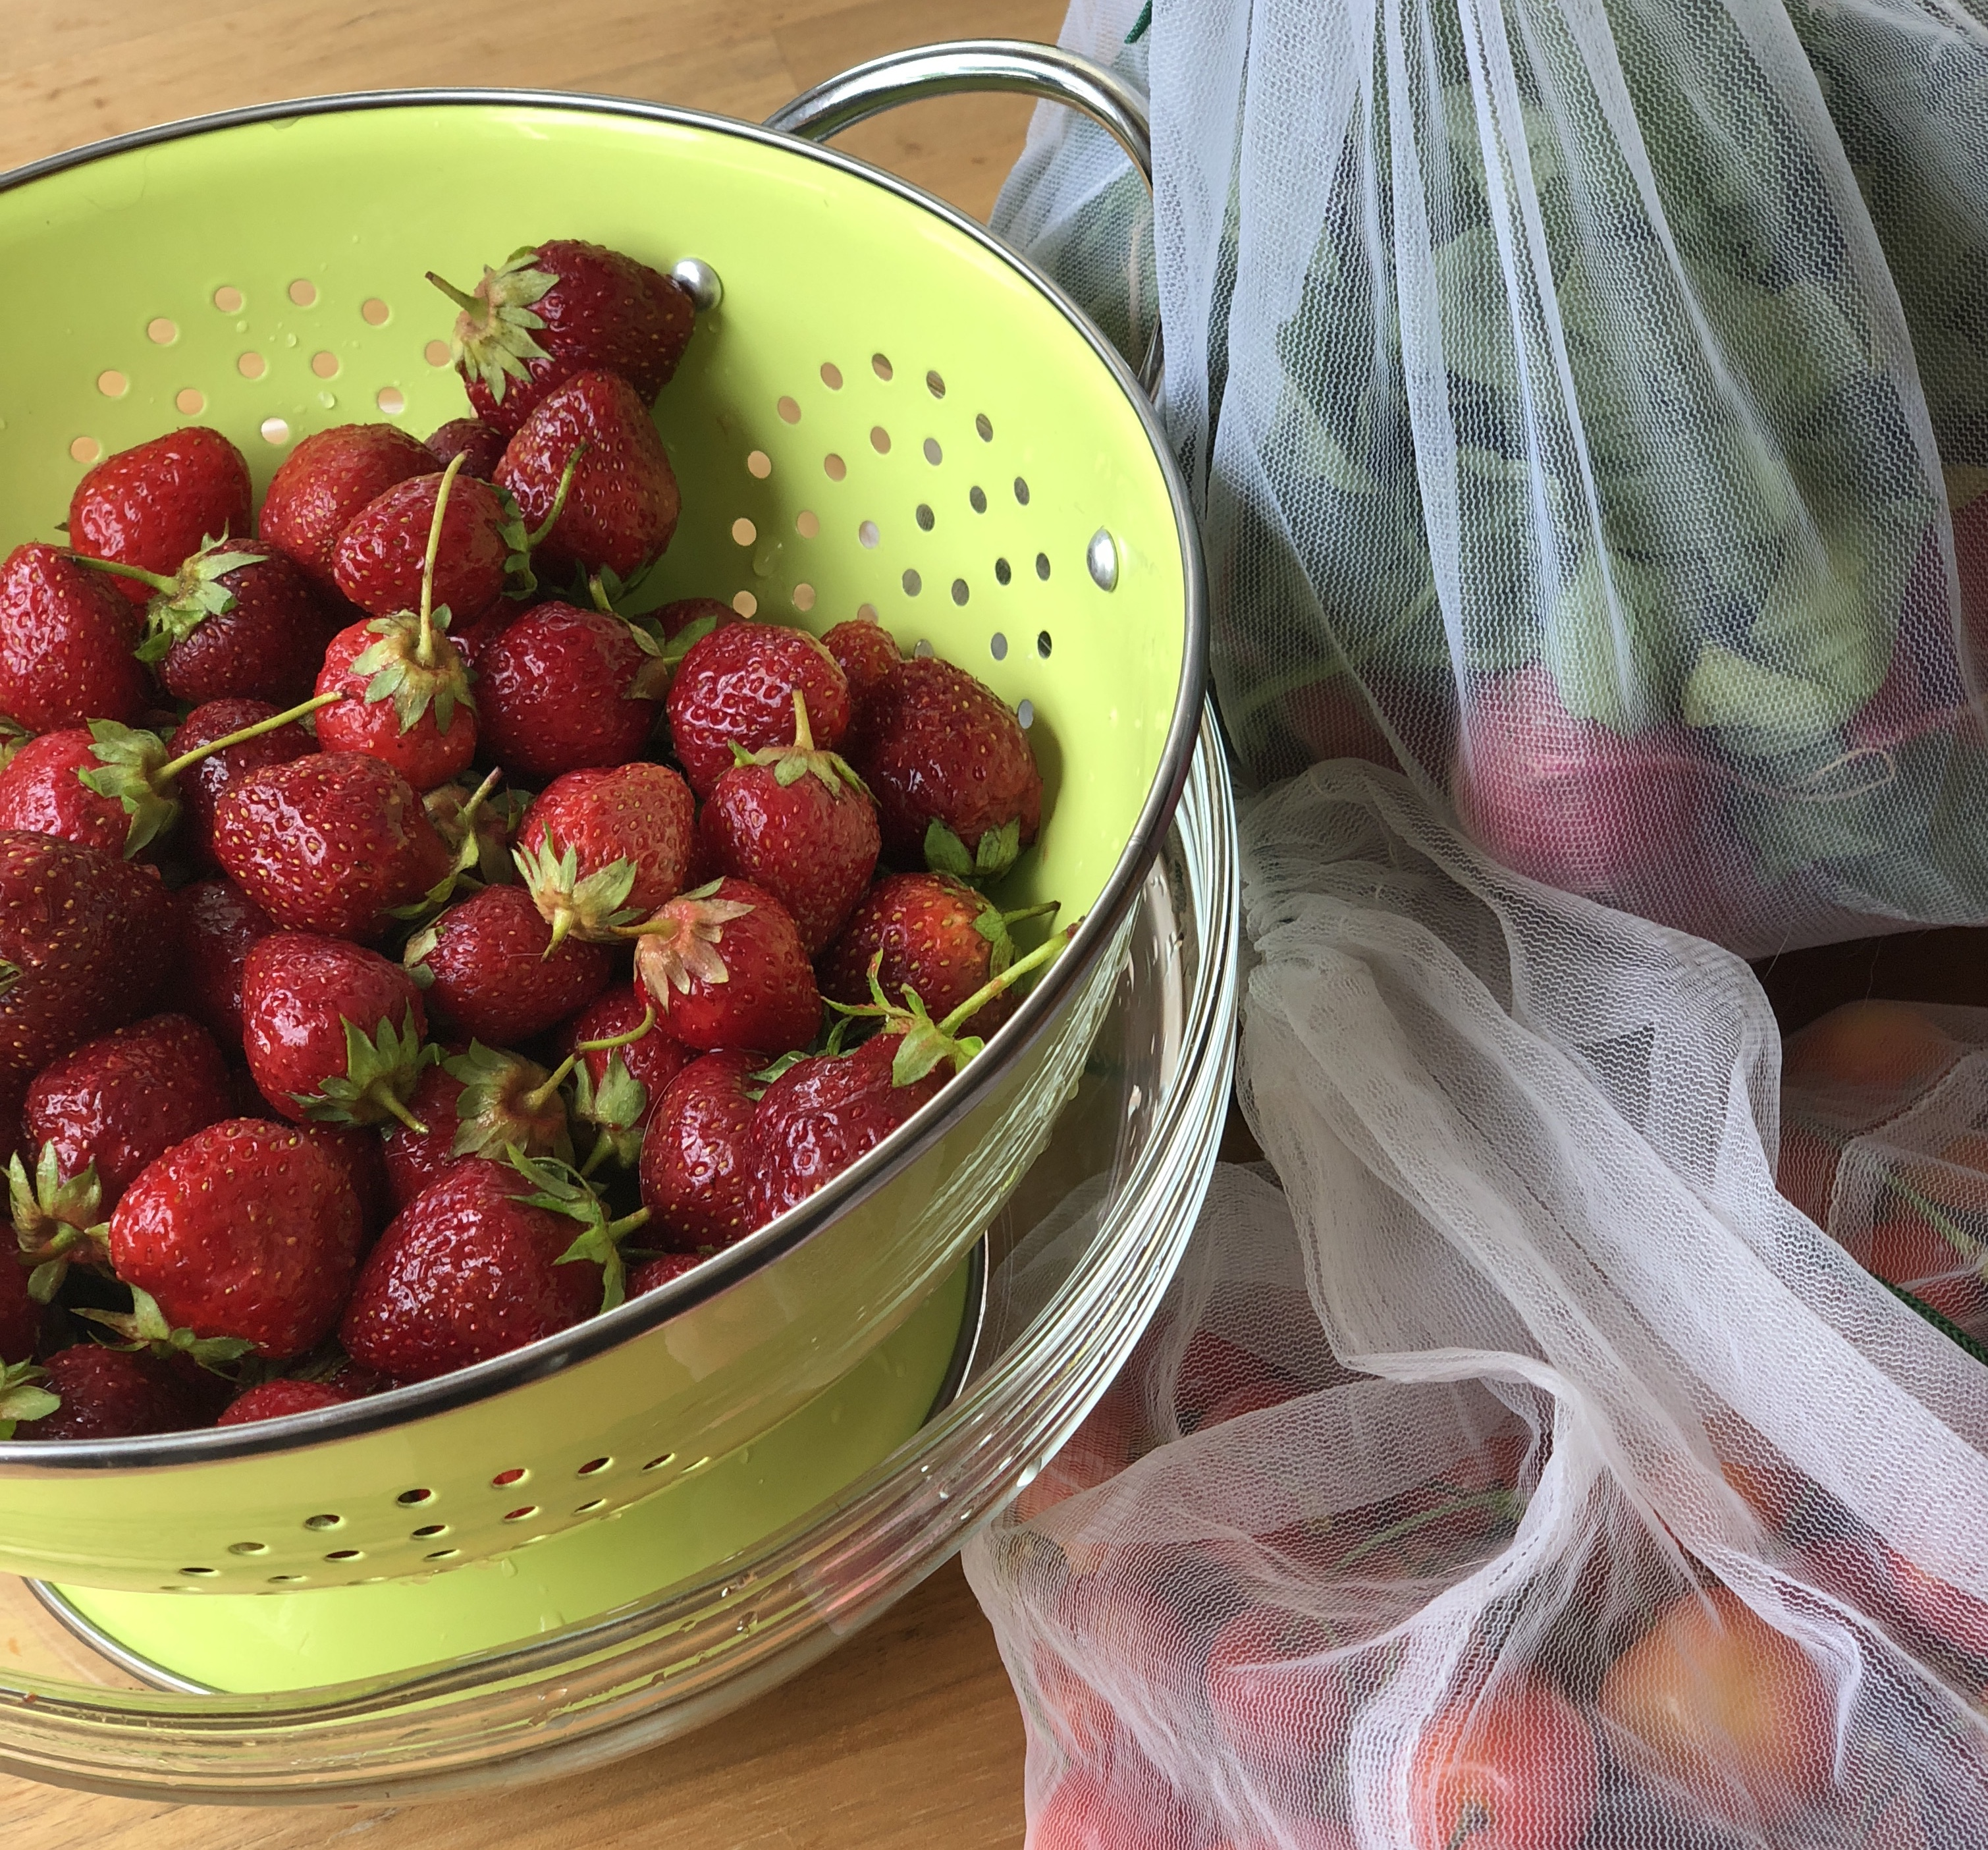 Locally grown strawberries, cherries, and radishes from the famers market